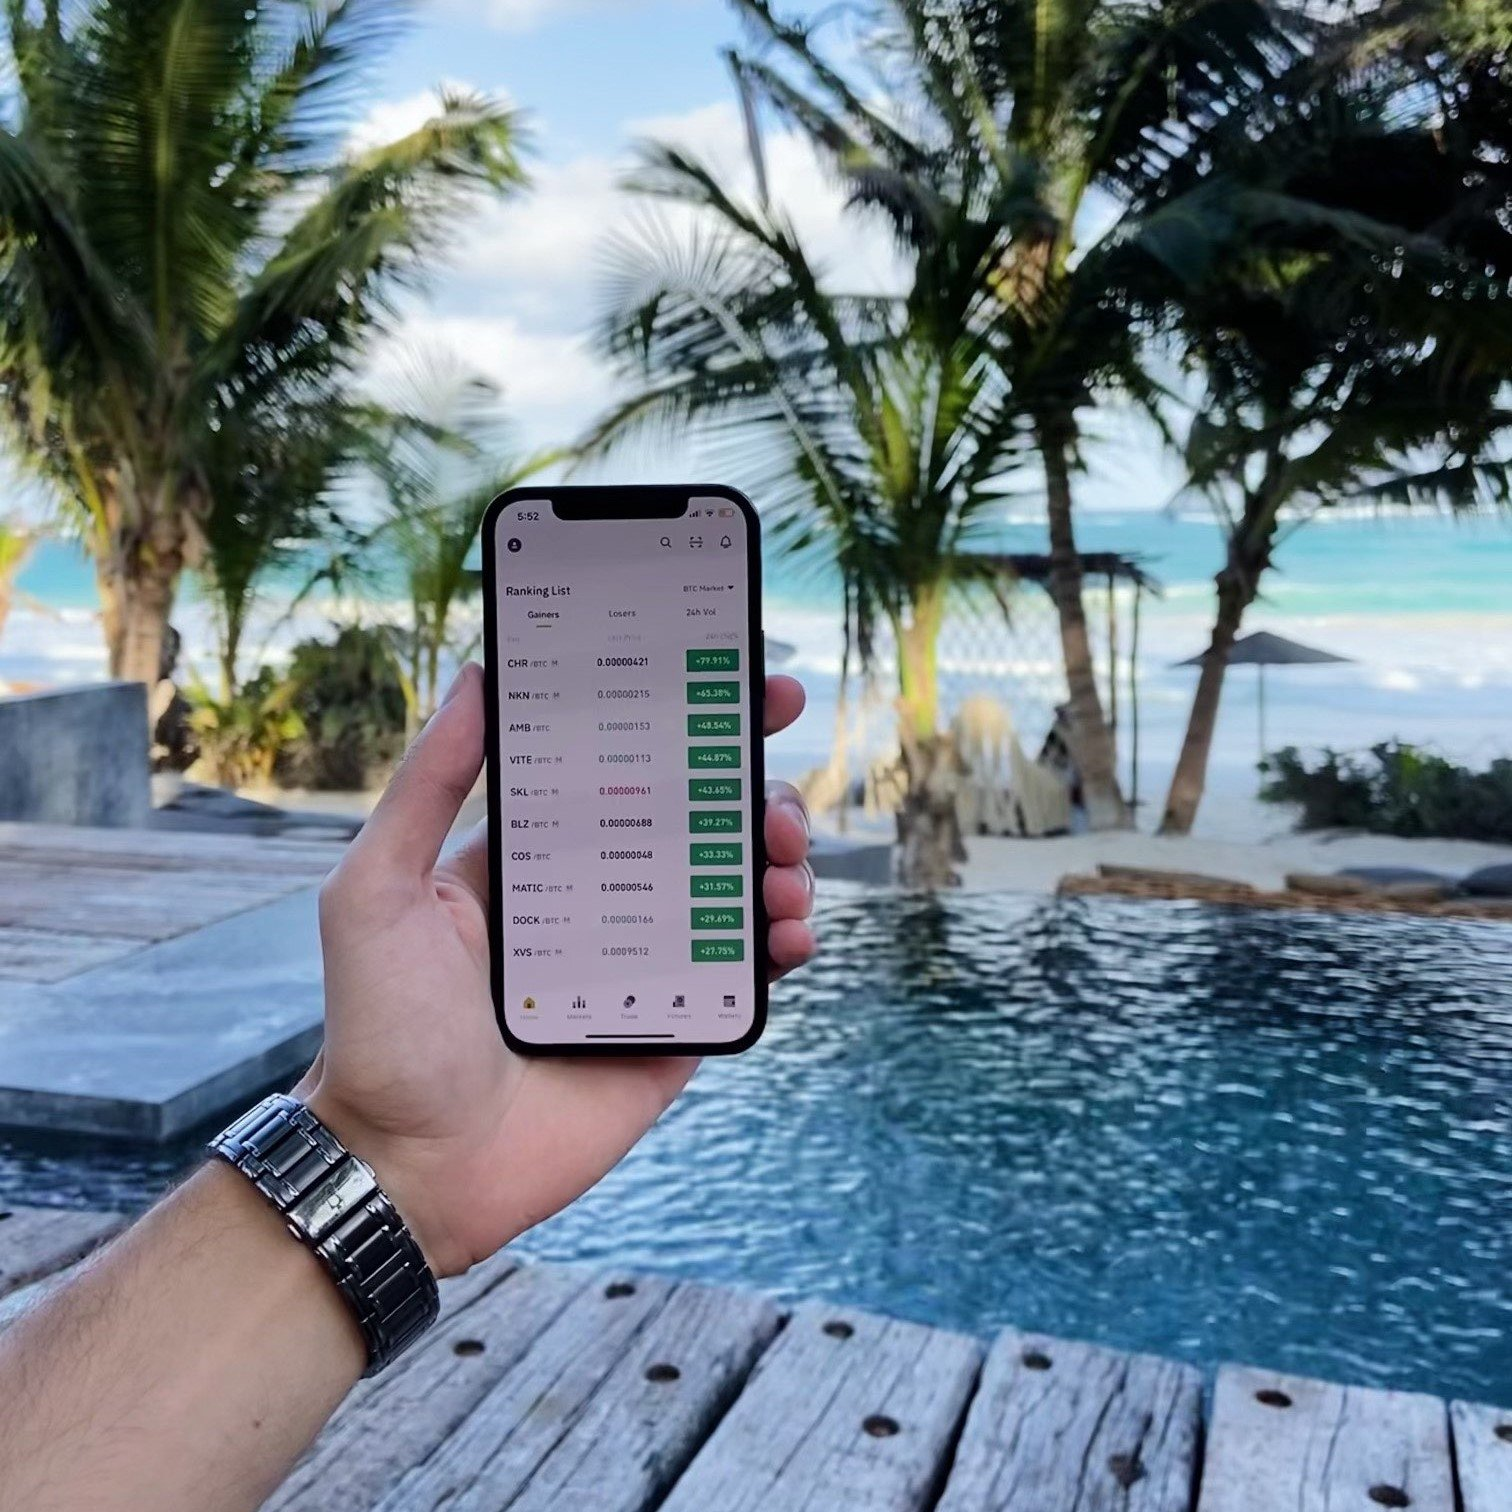 A phone with water and trees in the background